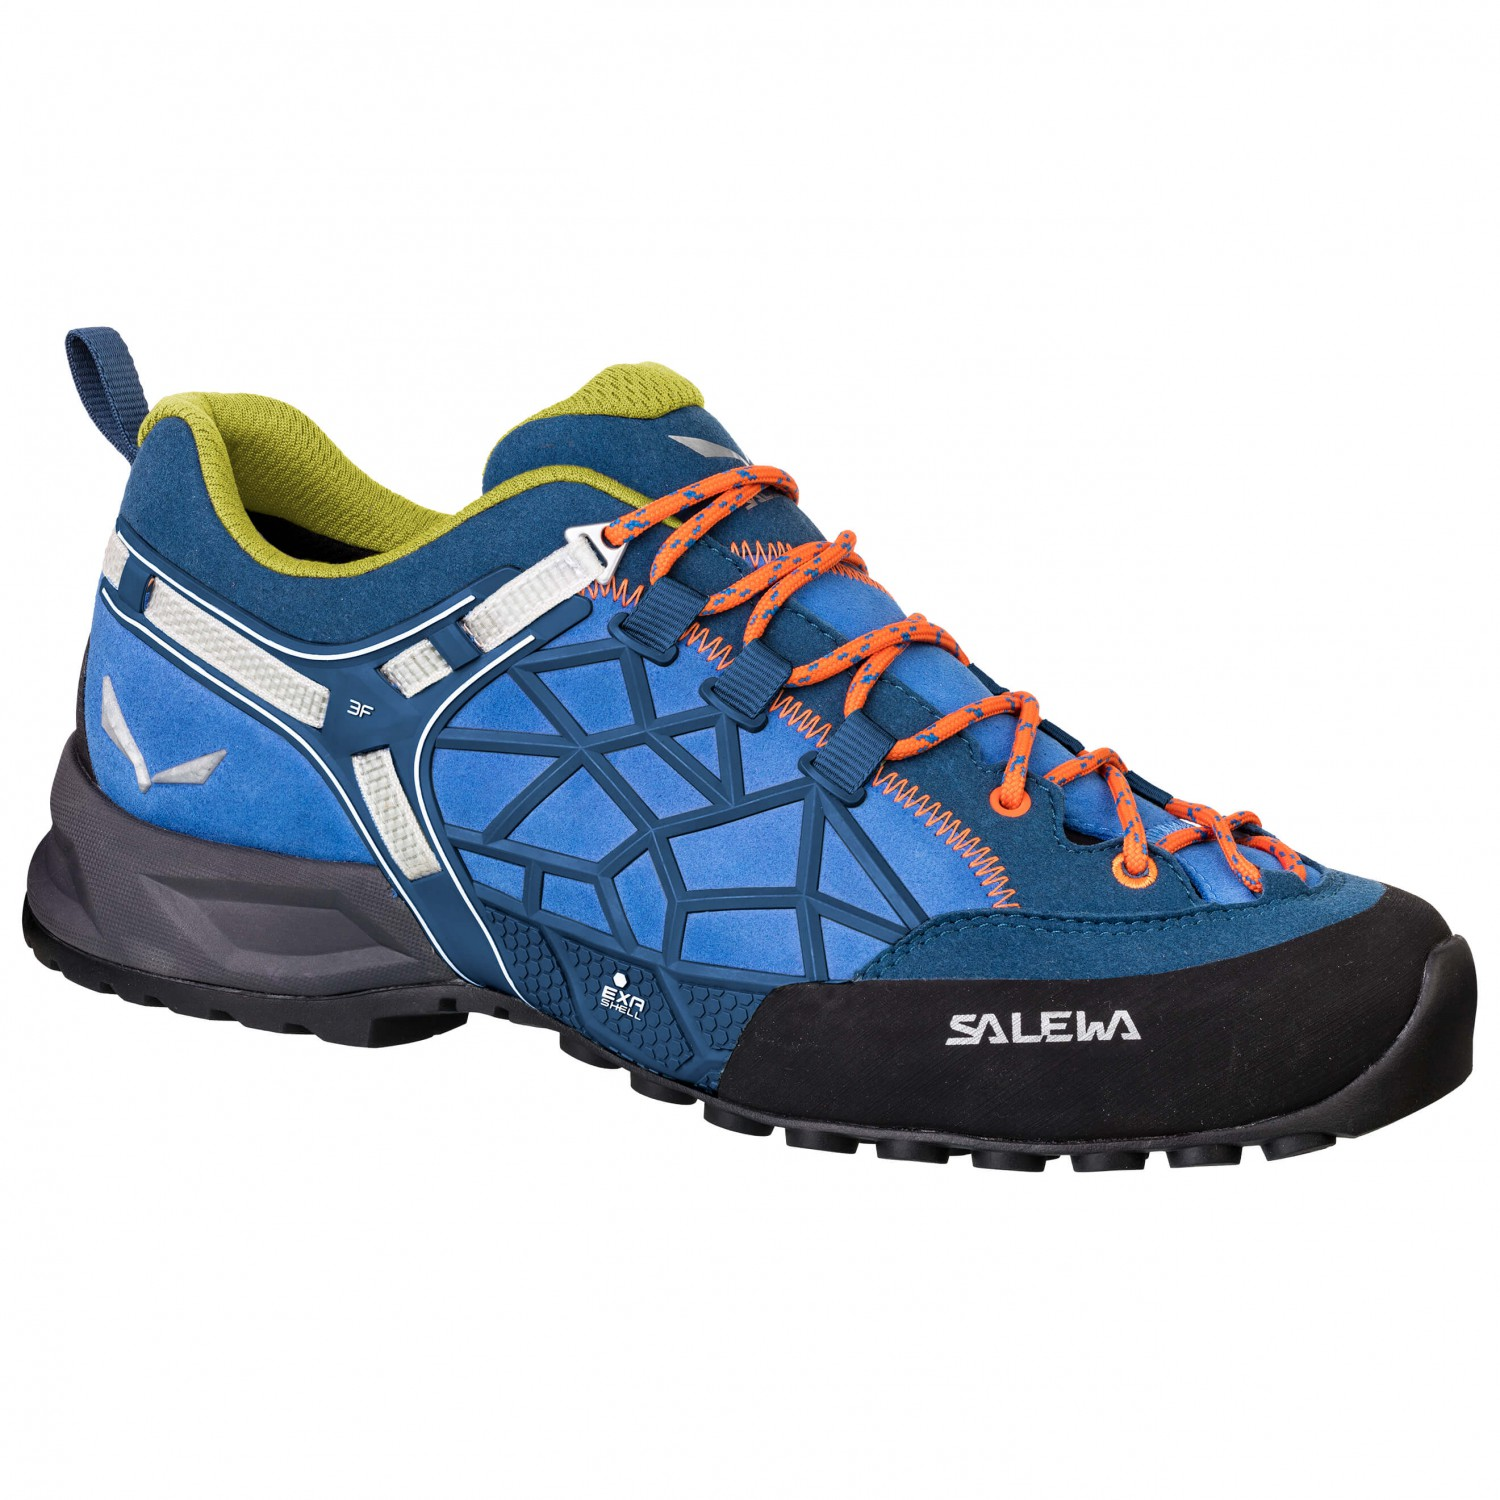 salewa-ms-wildfire-pro-approach-shoes.jp